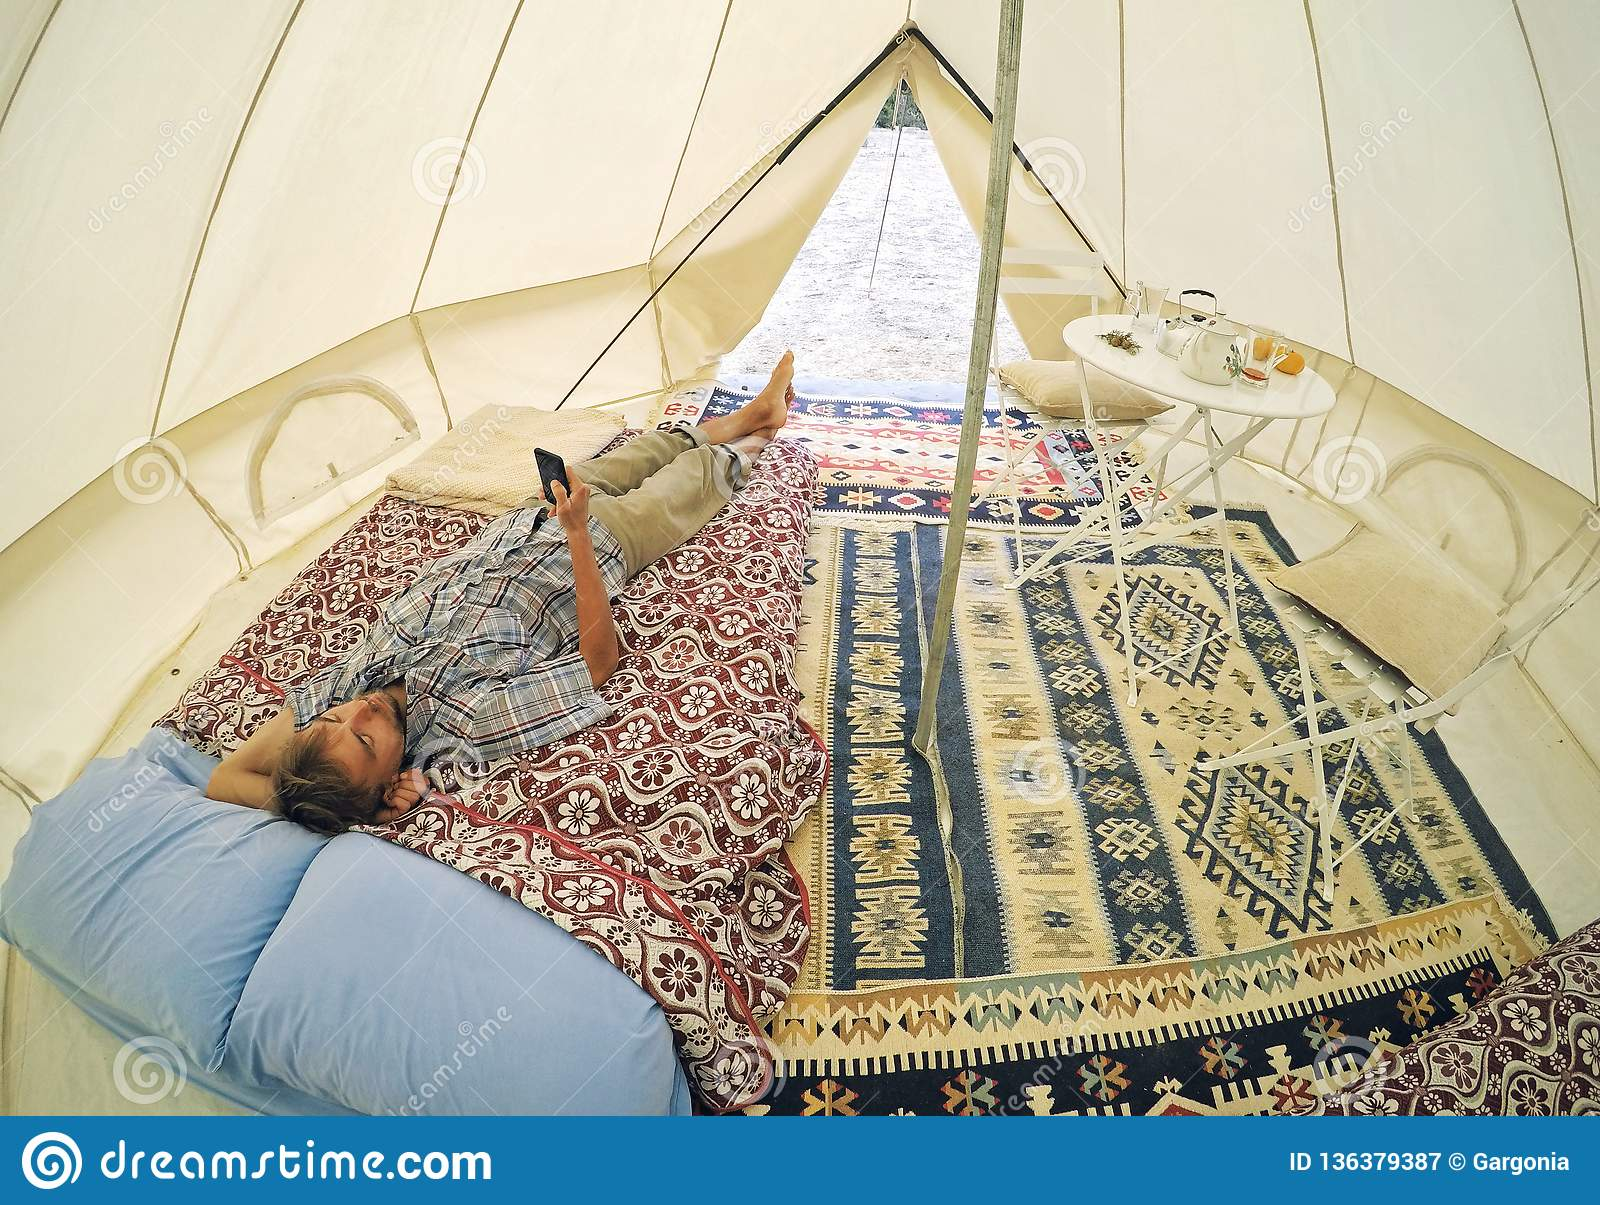 Glamping outdoor accomodation. Tourist men with smartphone lying on bed inside camping tent with cozy interior